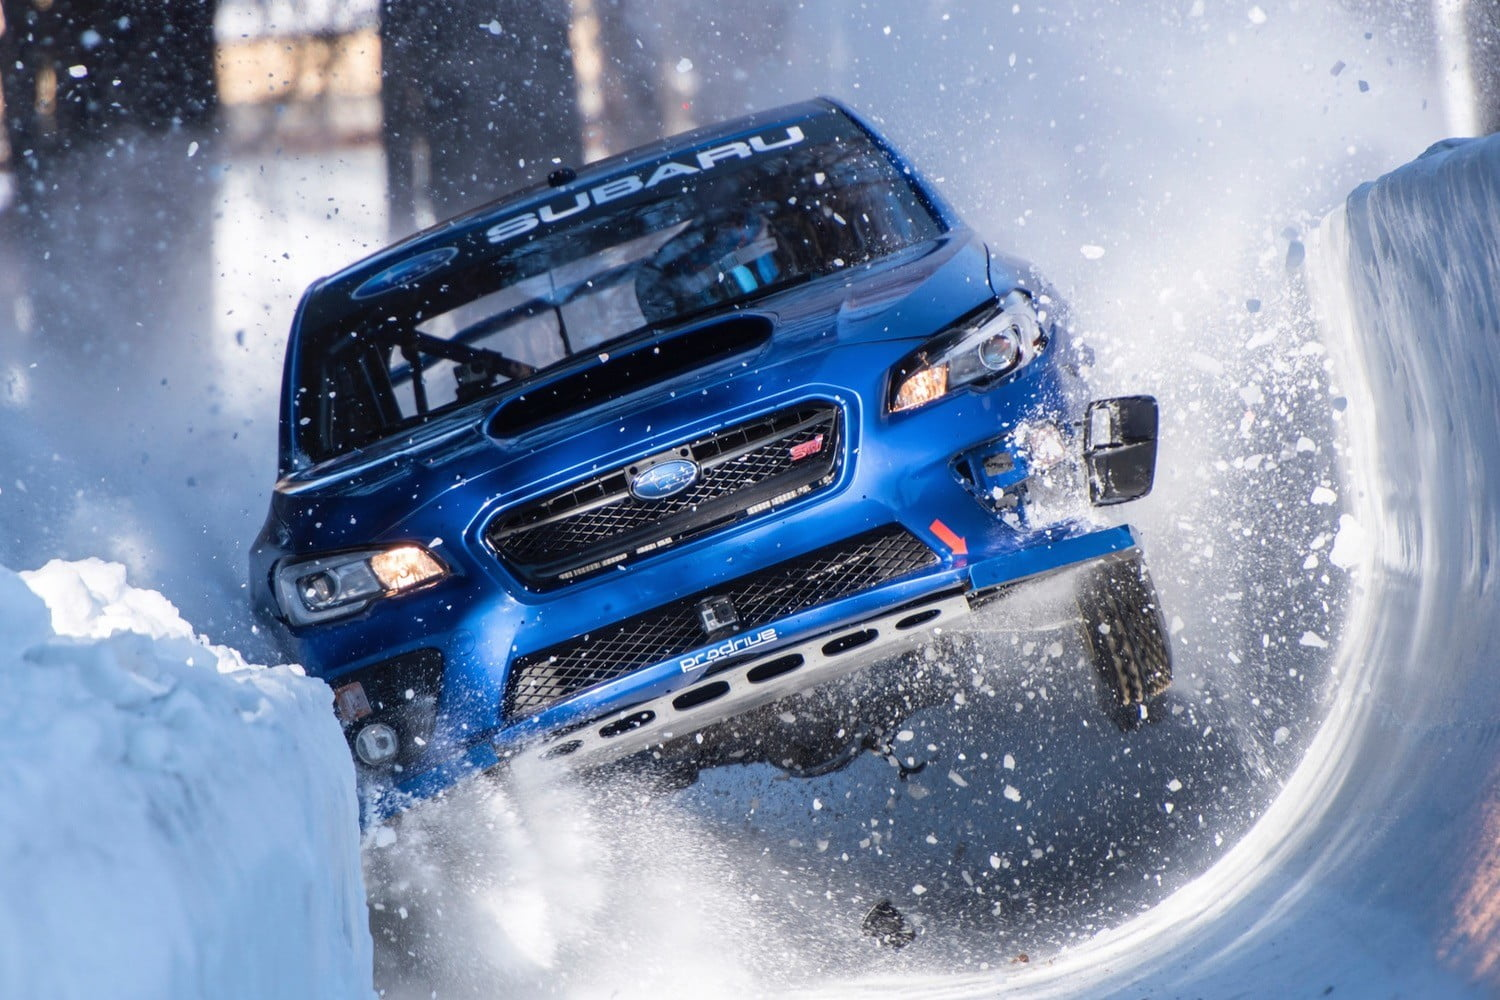 Subaru s wrx sti takes on an olympic bobsled run and the results aren t pretty